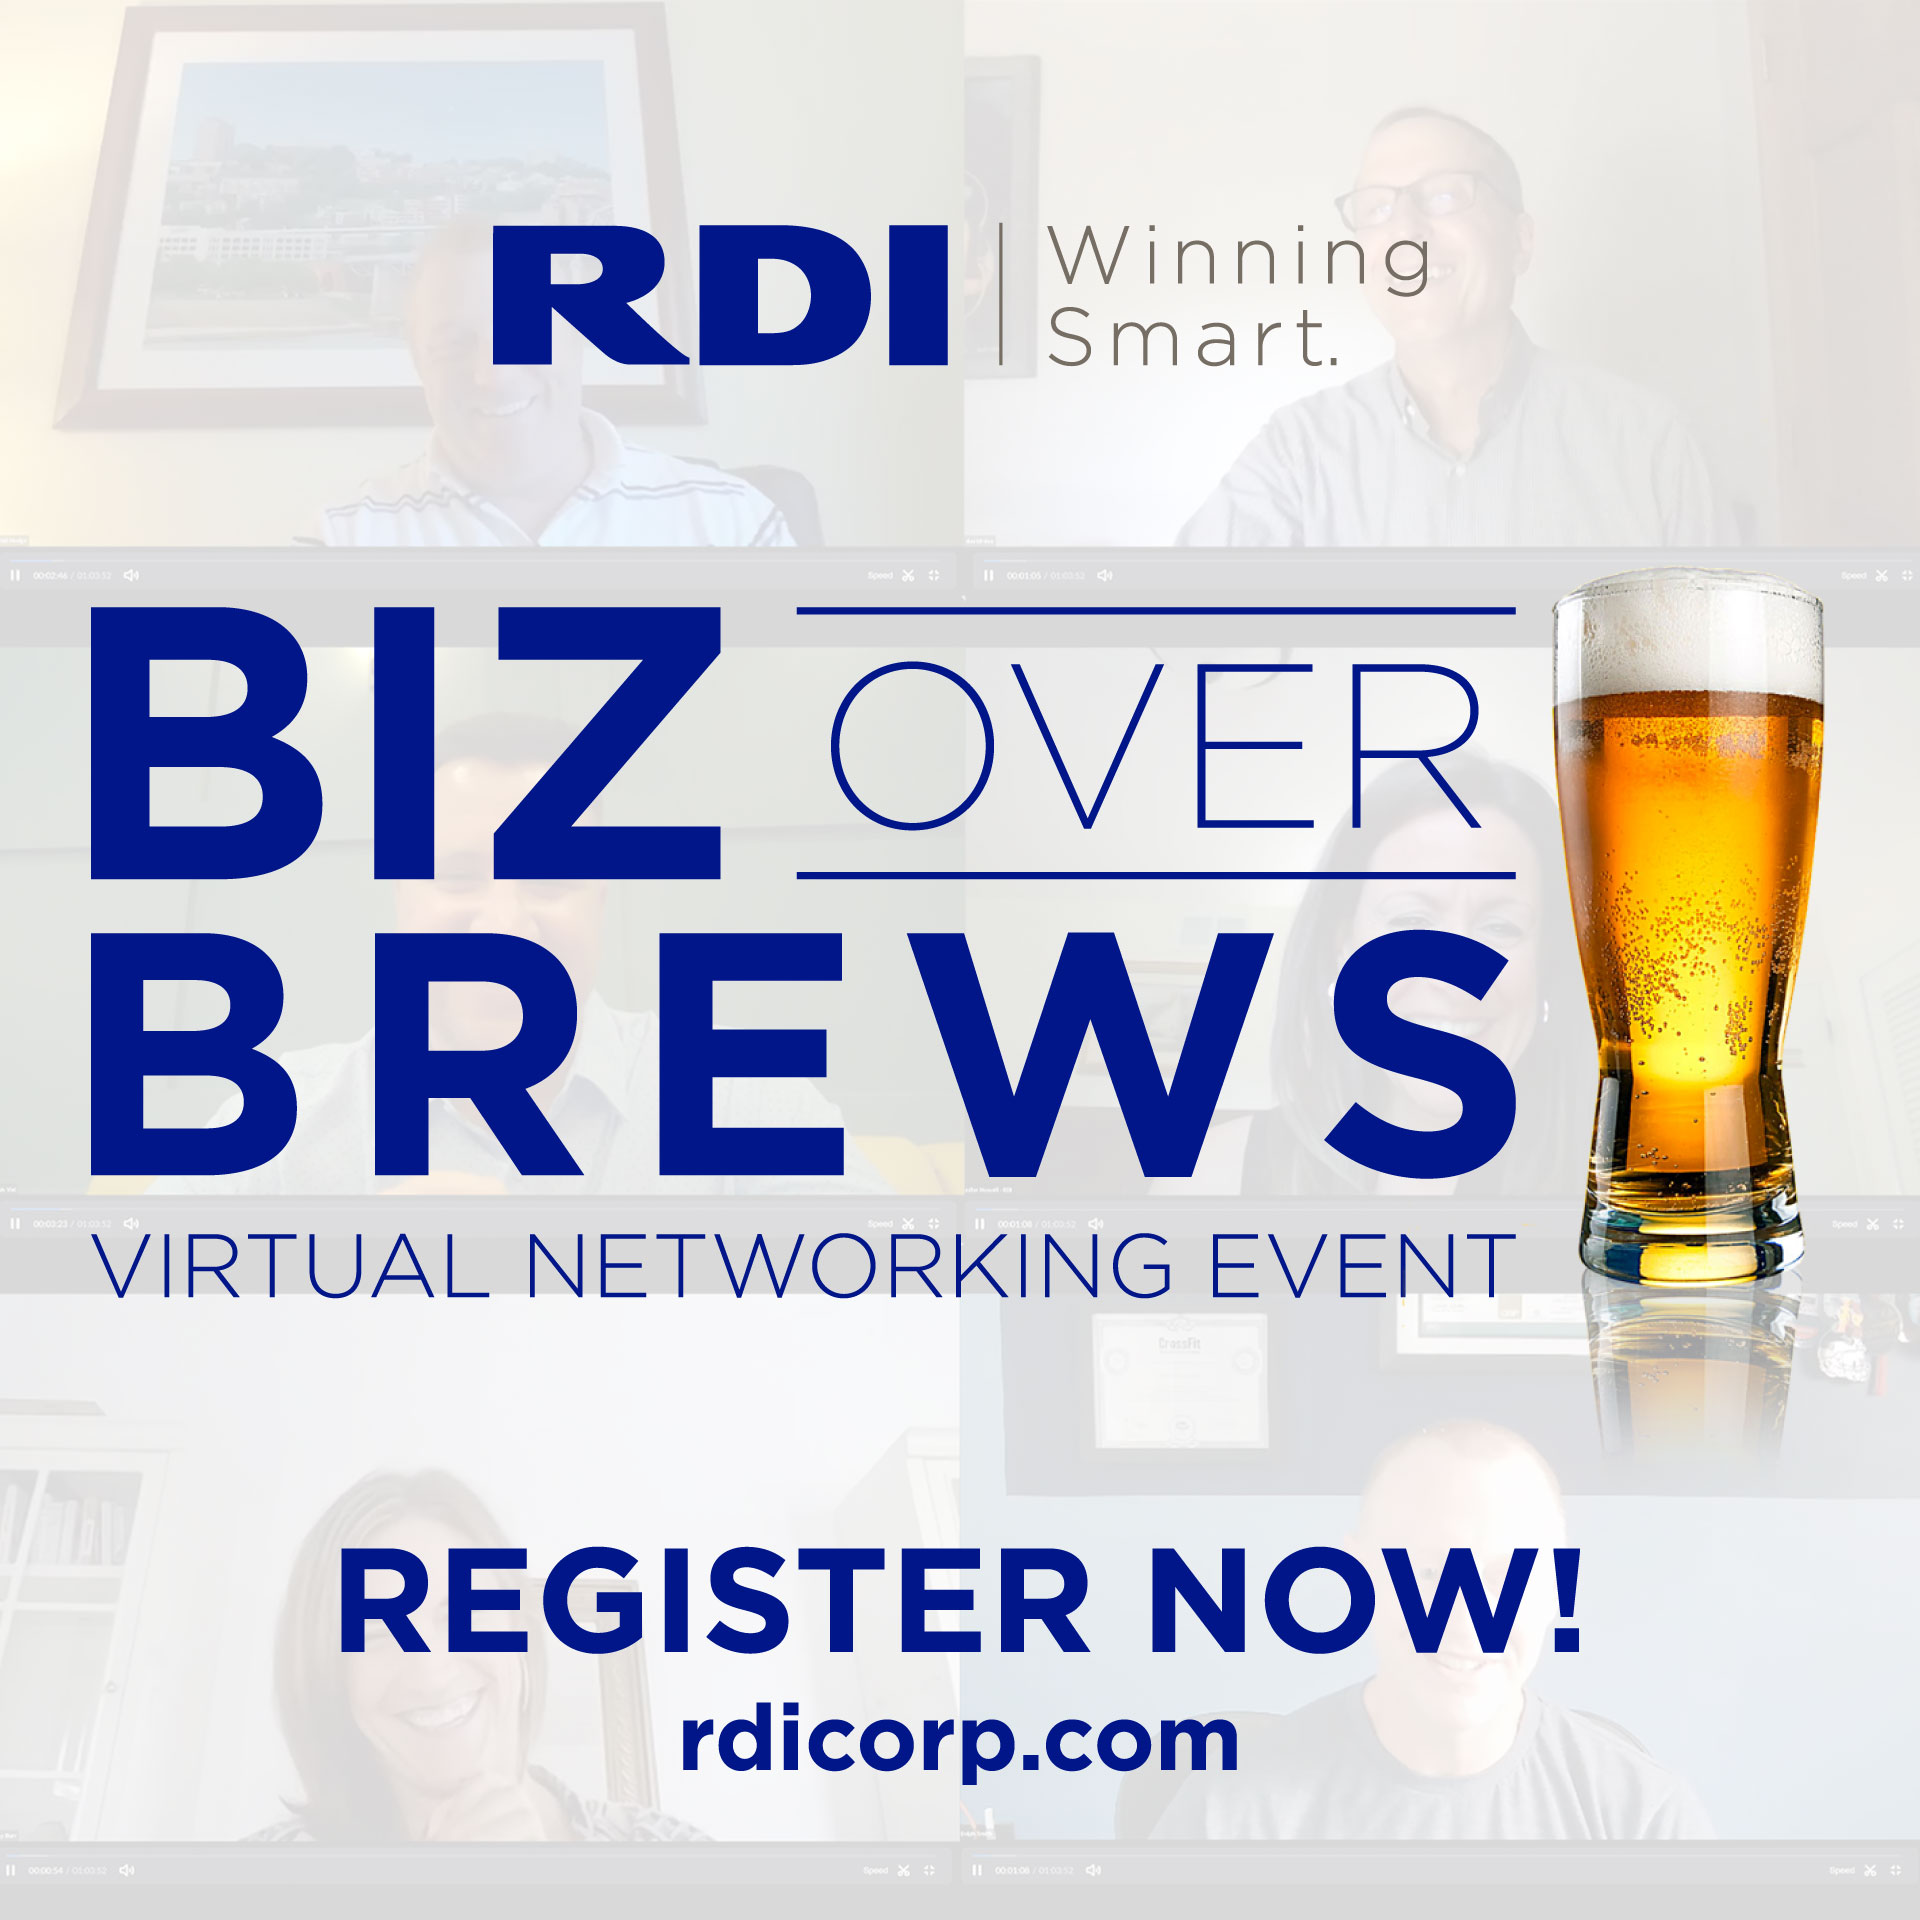 RDI Biz Over Brews Virtual Event - Winning Smart with Remote Teams